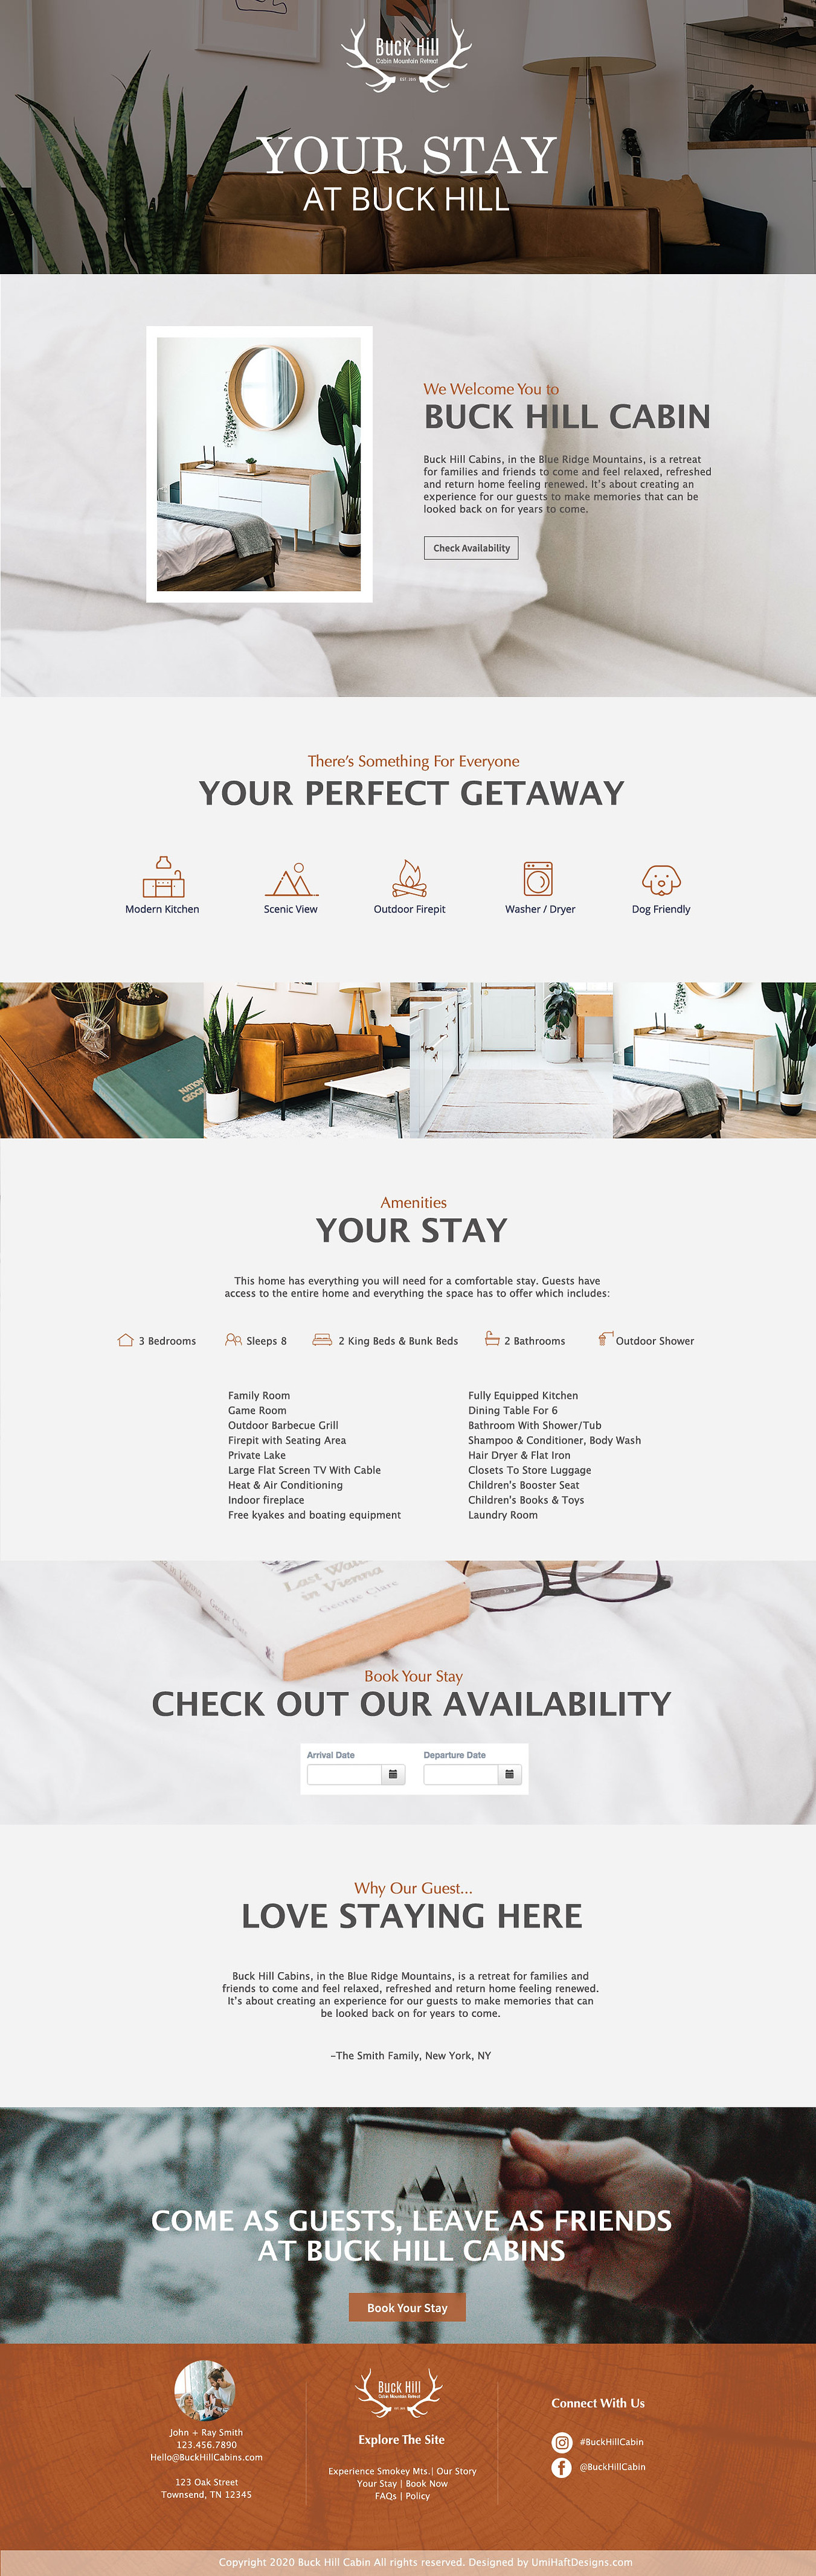 2-Your-Stay-The-Great-Outdoors-Website-T